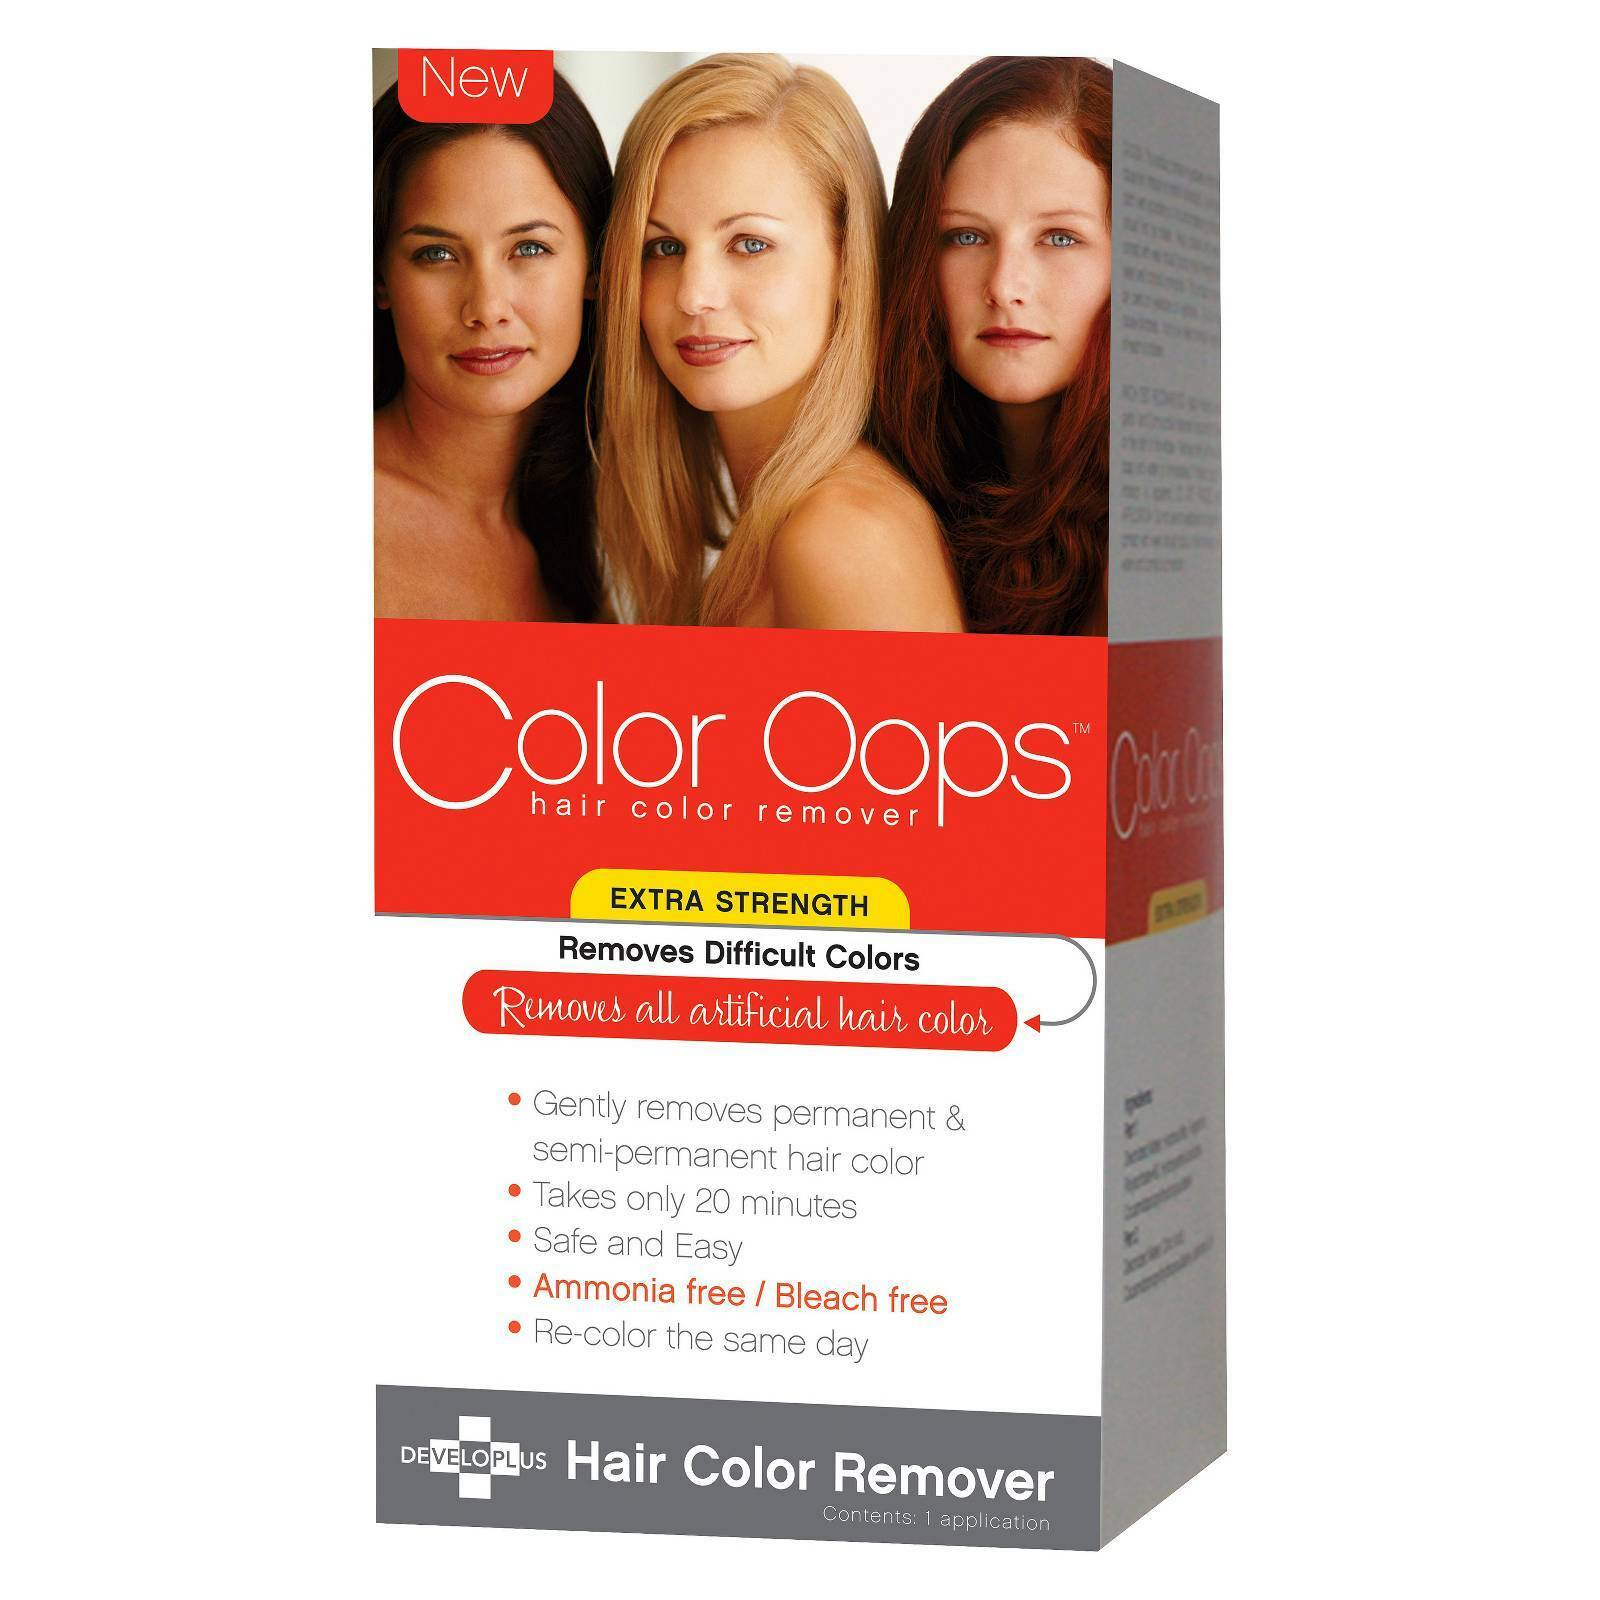 Color Oops Developlus Hair Color Remover Extra Strength Mm3148 Ebay